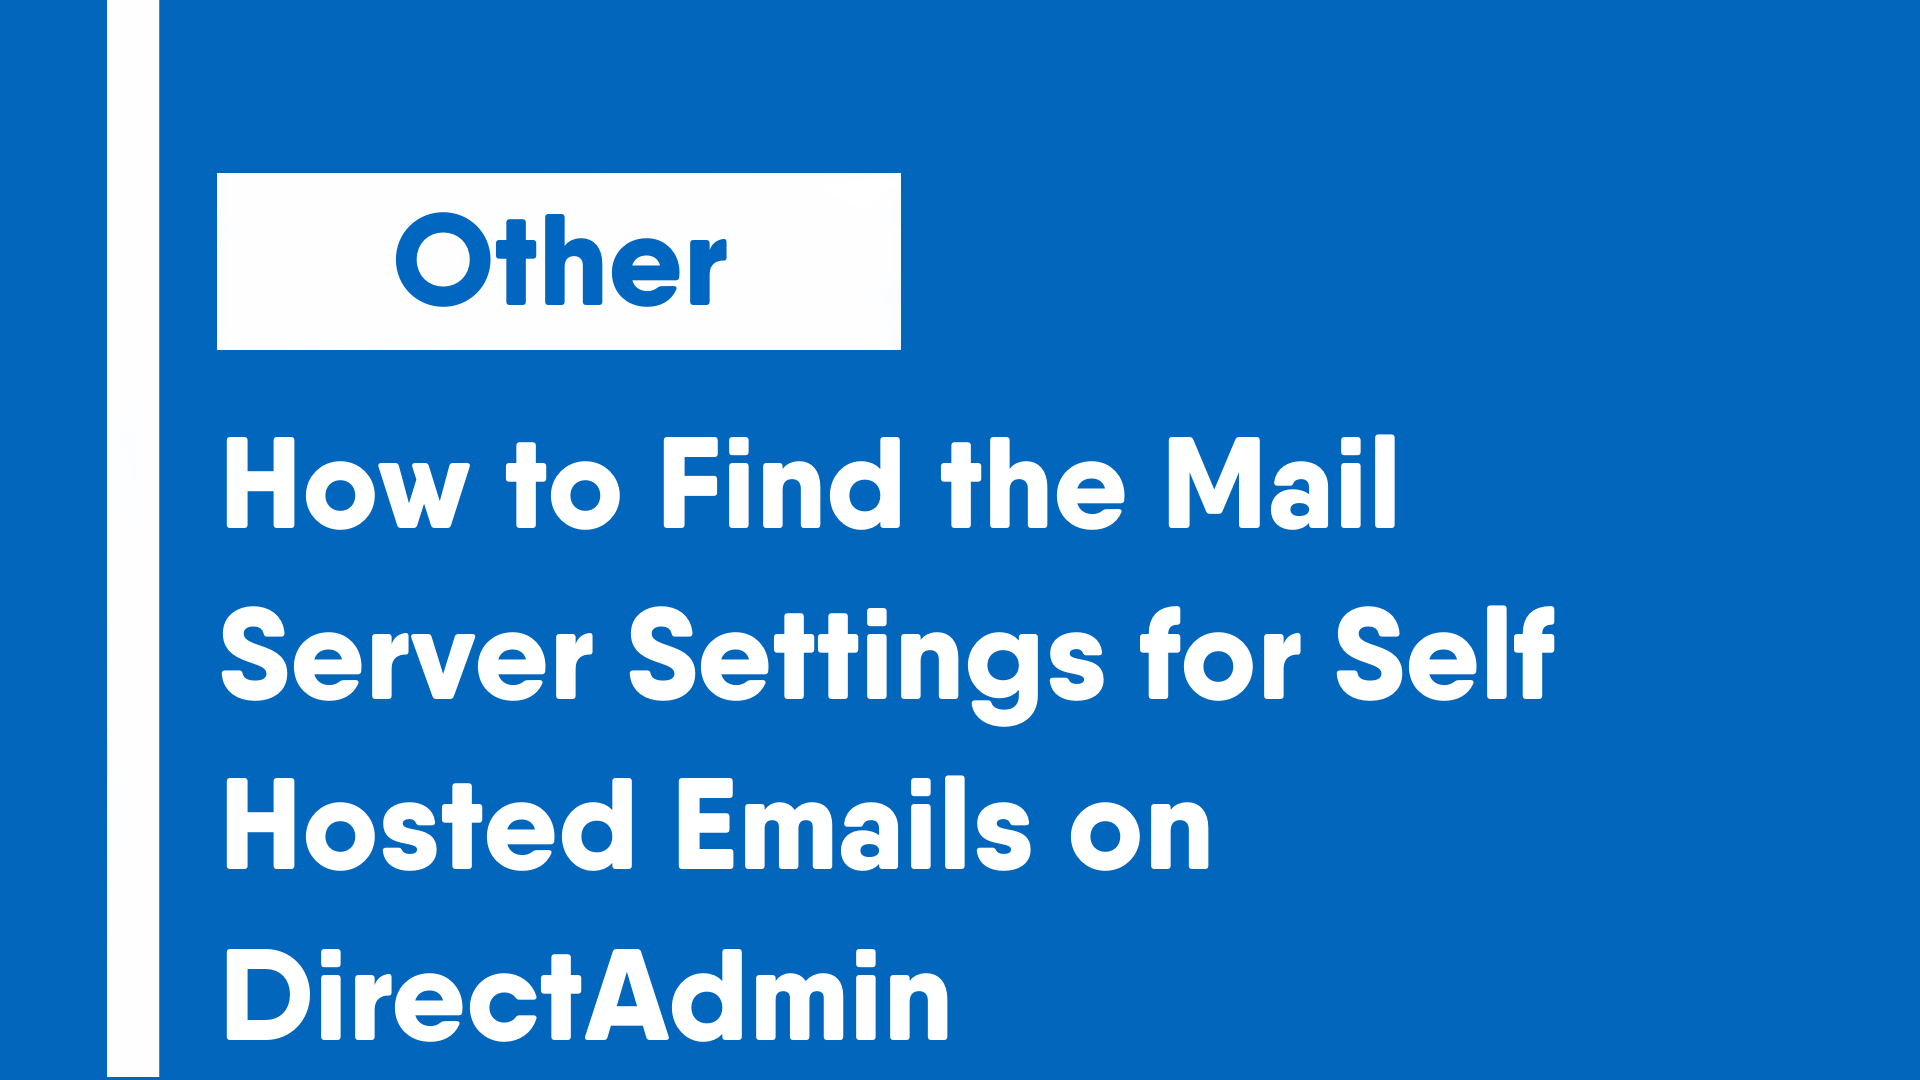 How to Find the Mail Server Settings for Self Hosted Emails on DirectAdmin